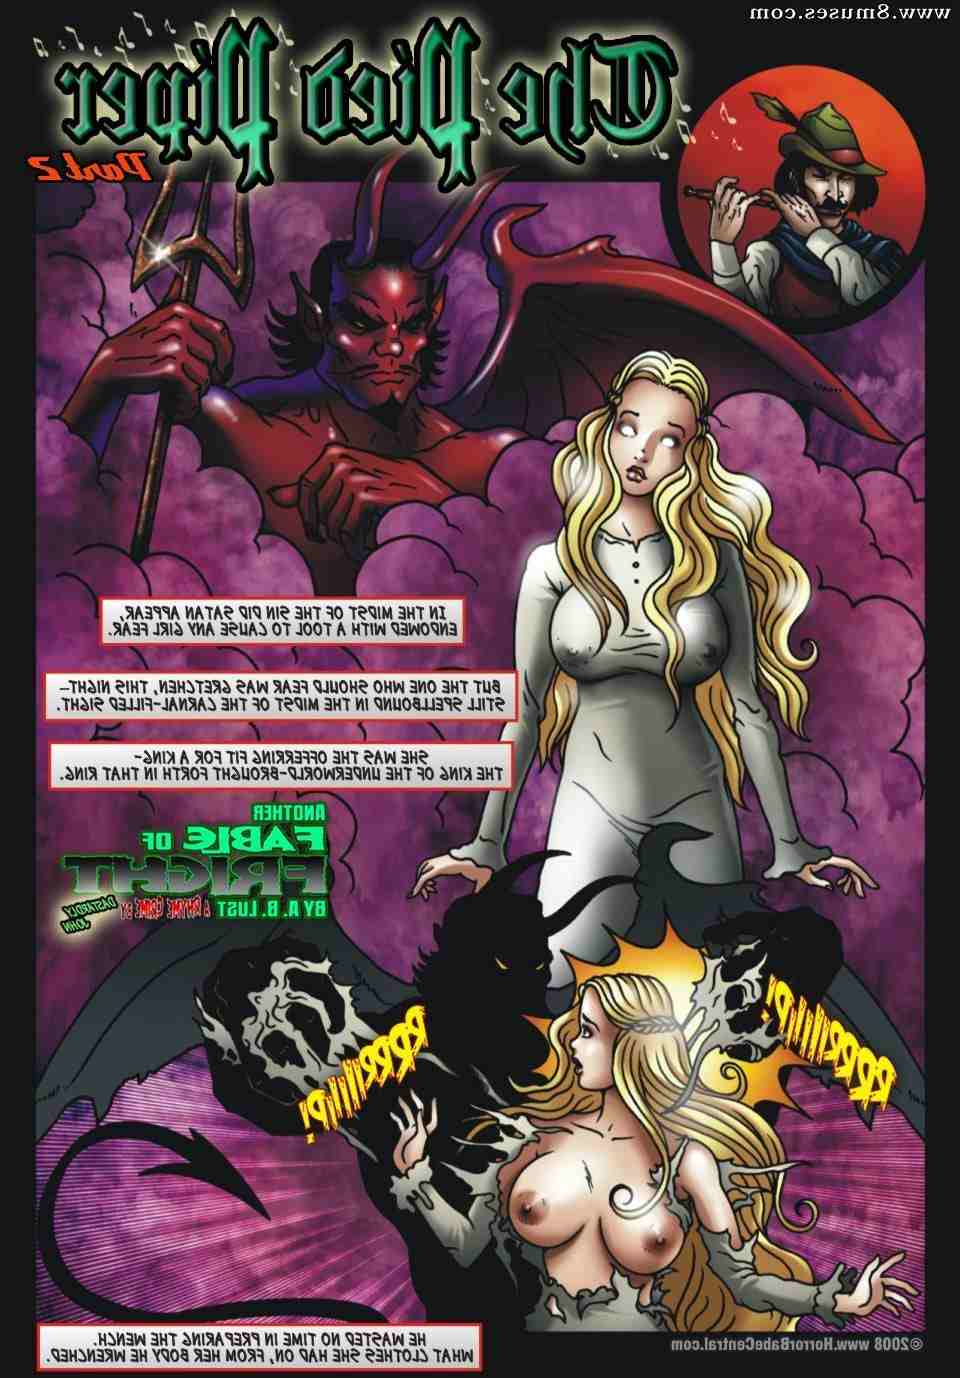 Central-Comics/Horror-Babe-Central/Fable-of-Fright Fable_of_Fright__8muses_-_Sex_and_Porn_Comics_81.jpg